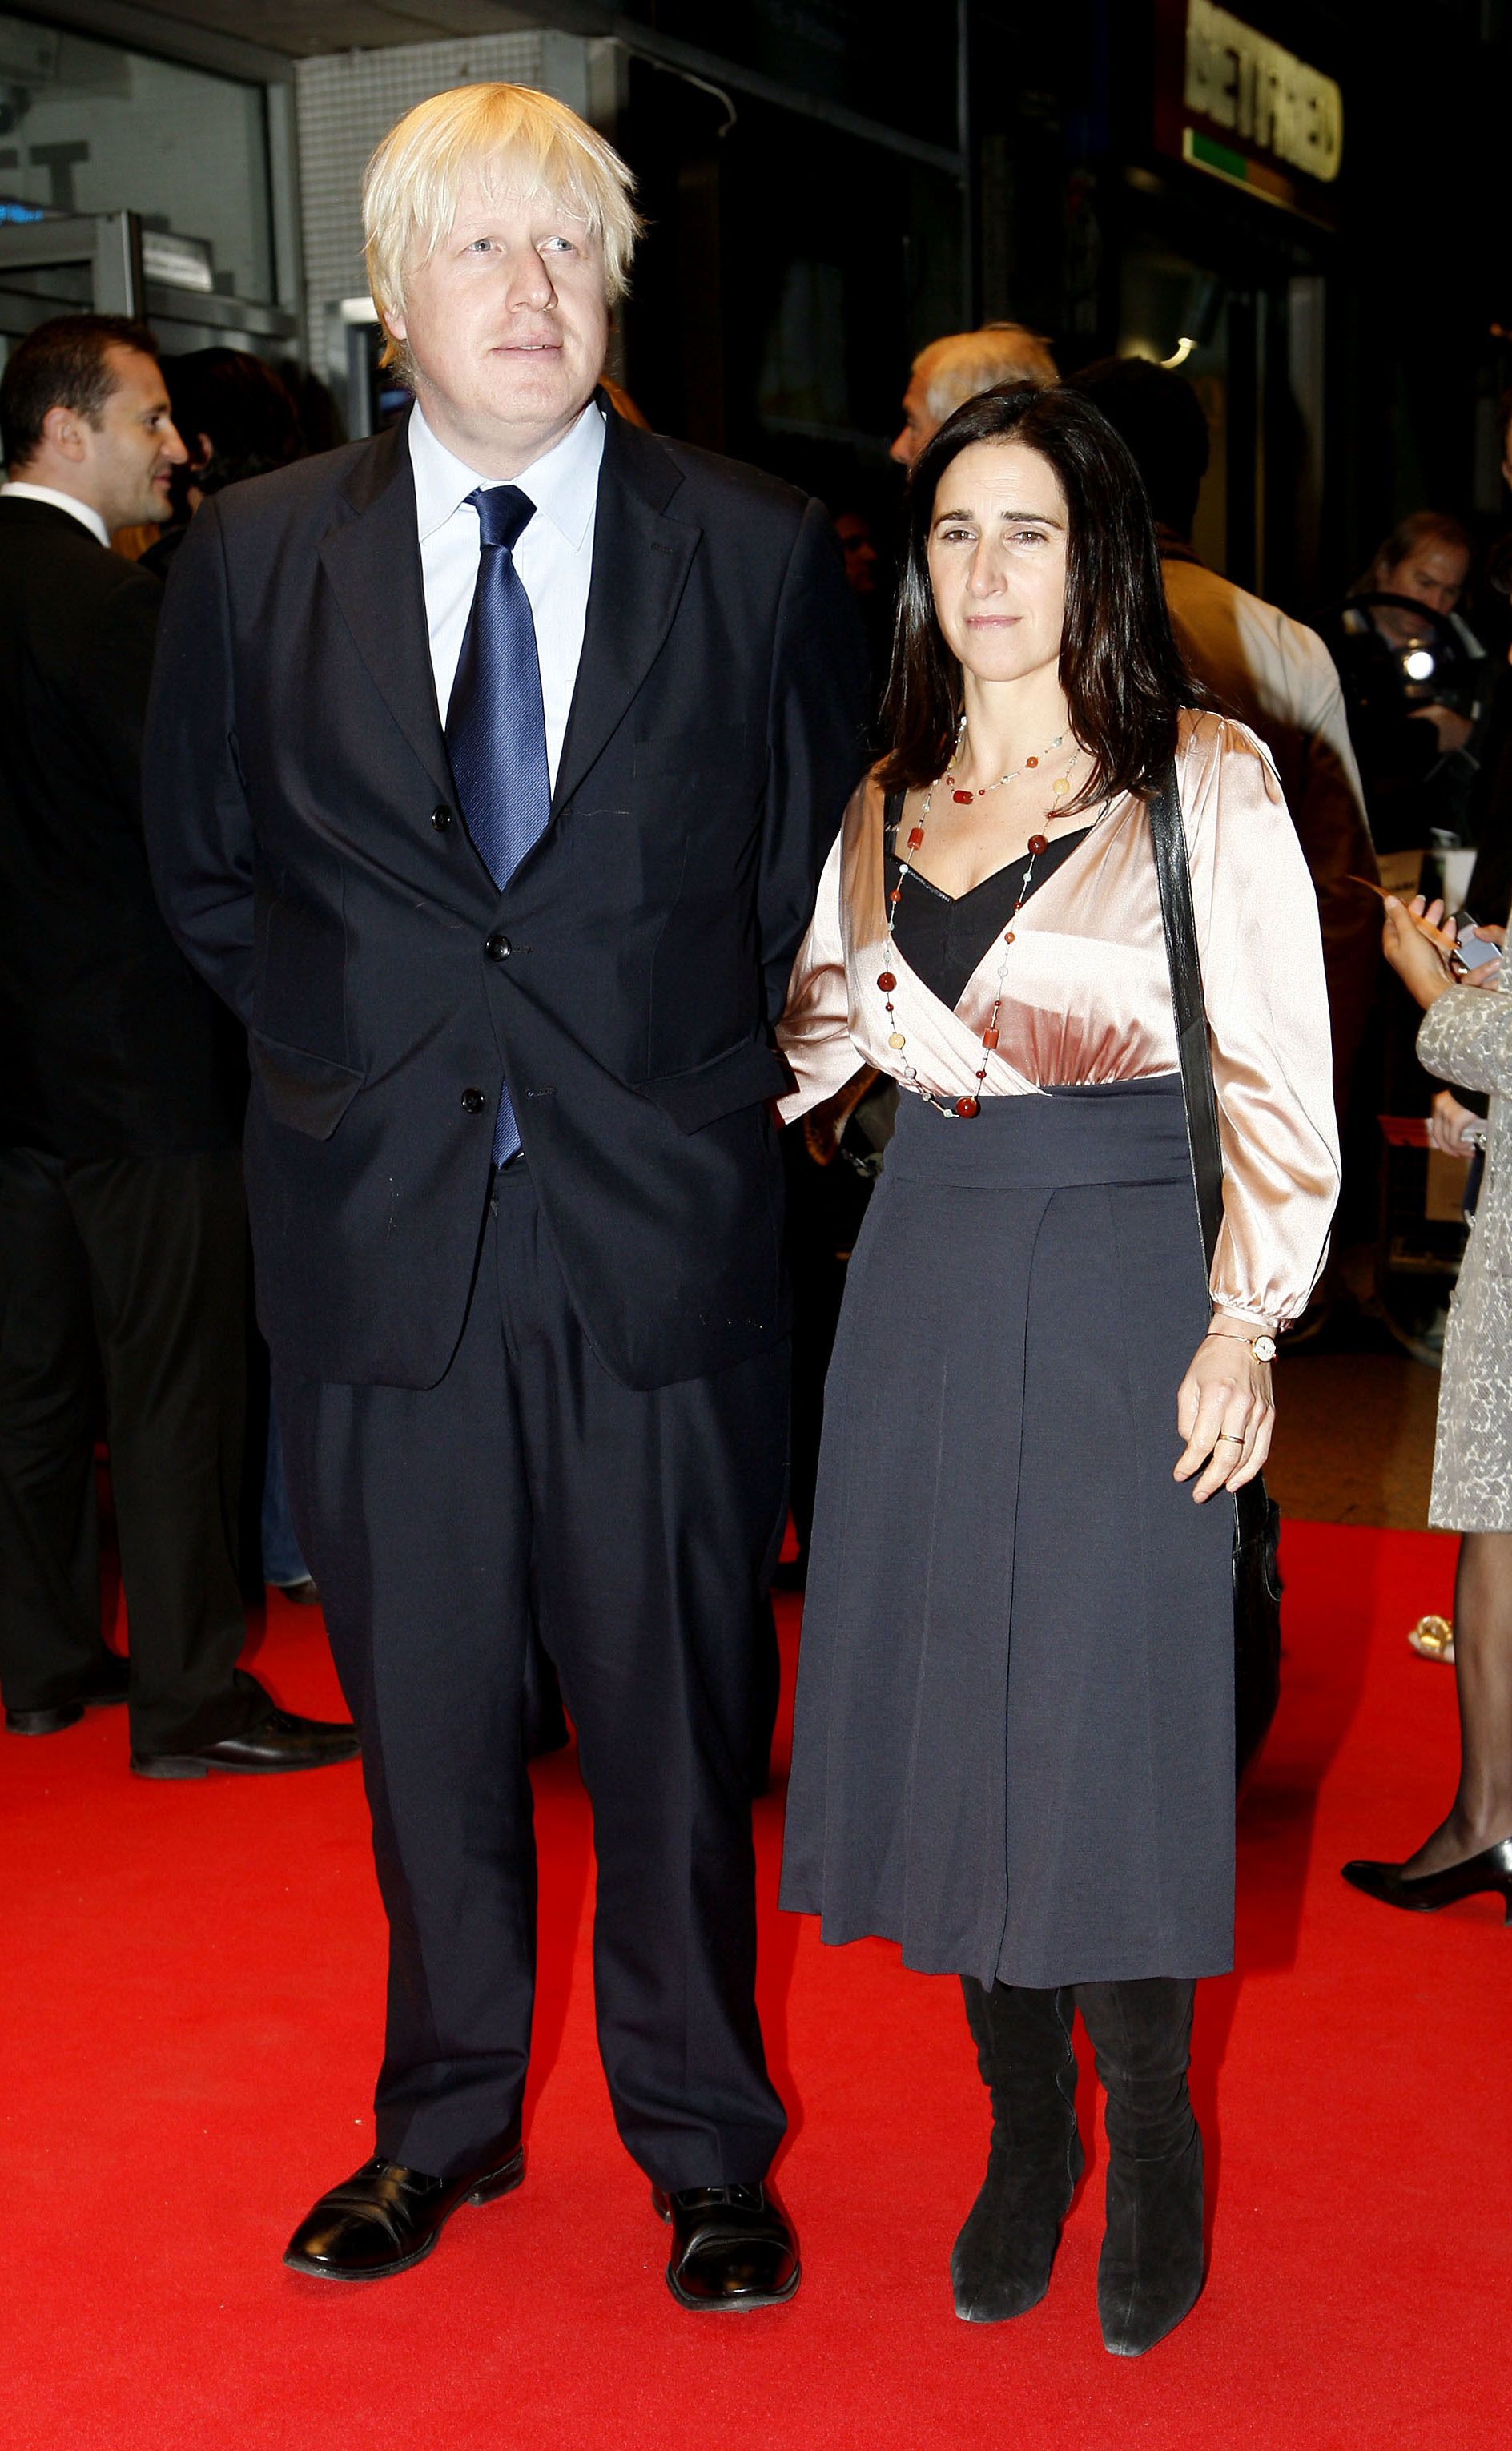 Boris Johnson and his wife Marina arriving at the Gala Screening of 'Genova' directed by Michael Winterbottom, during the The Times BFI London Film Festival 2008, at the Odeon West End, Leicester Square, central London.